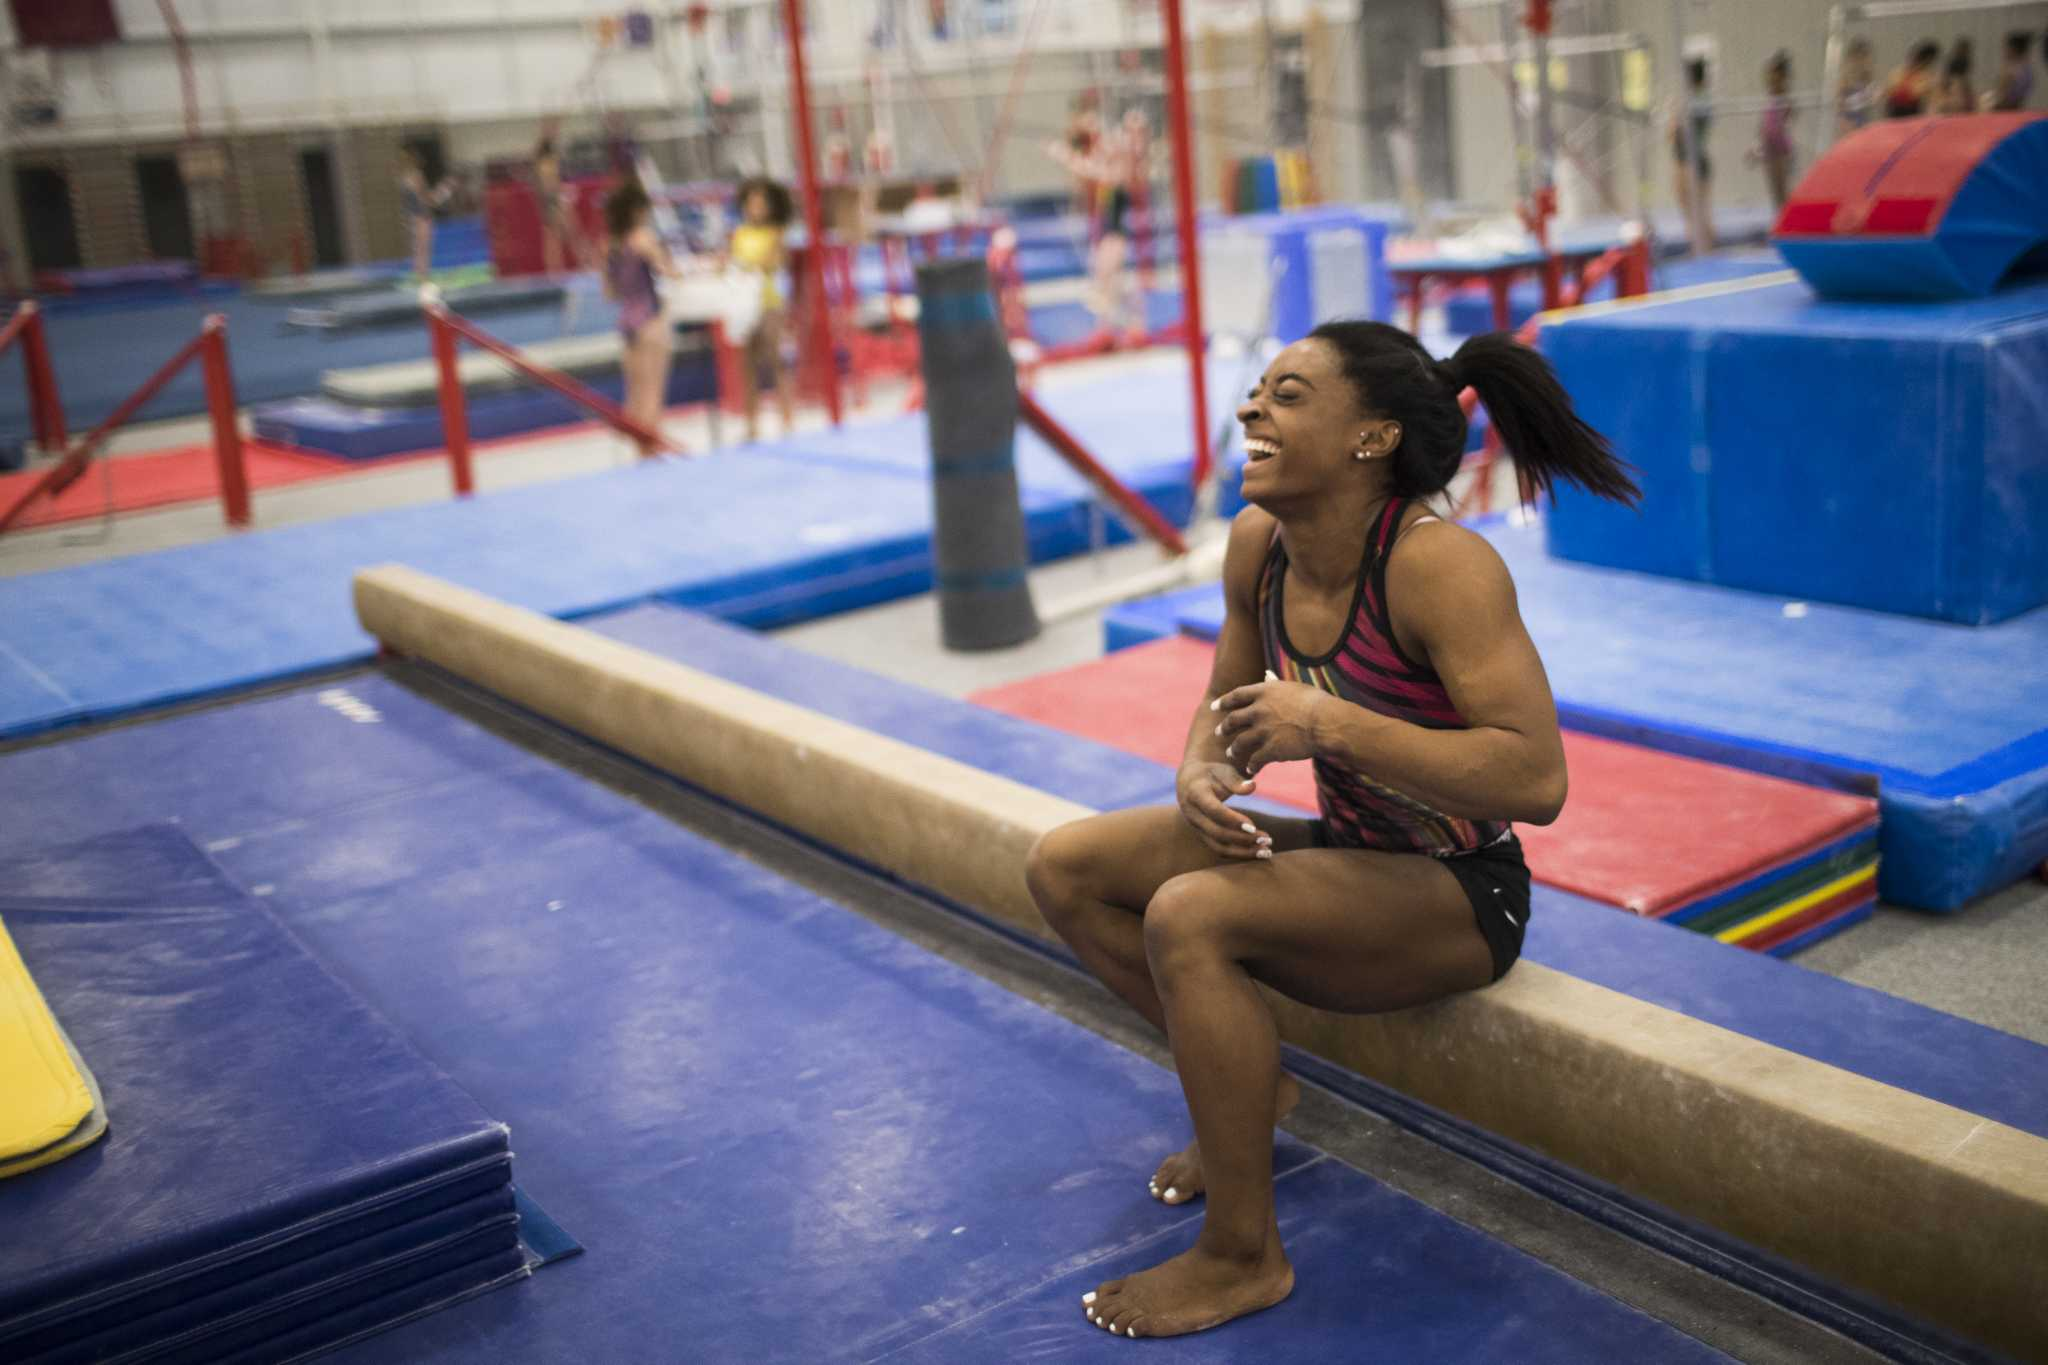 Simone Biles Q&A: Kidney stones, speaking out and a new coach